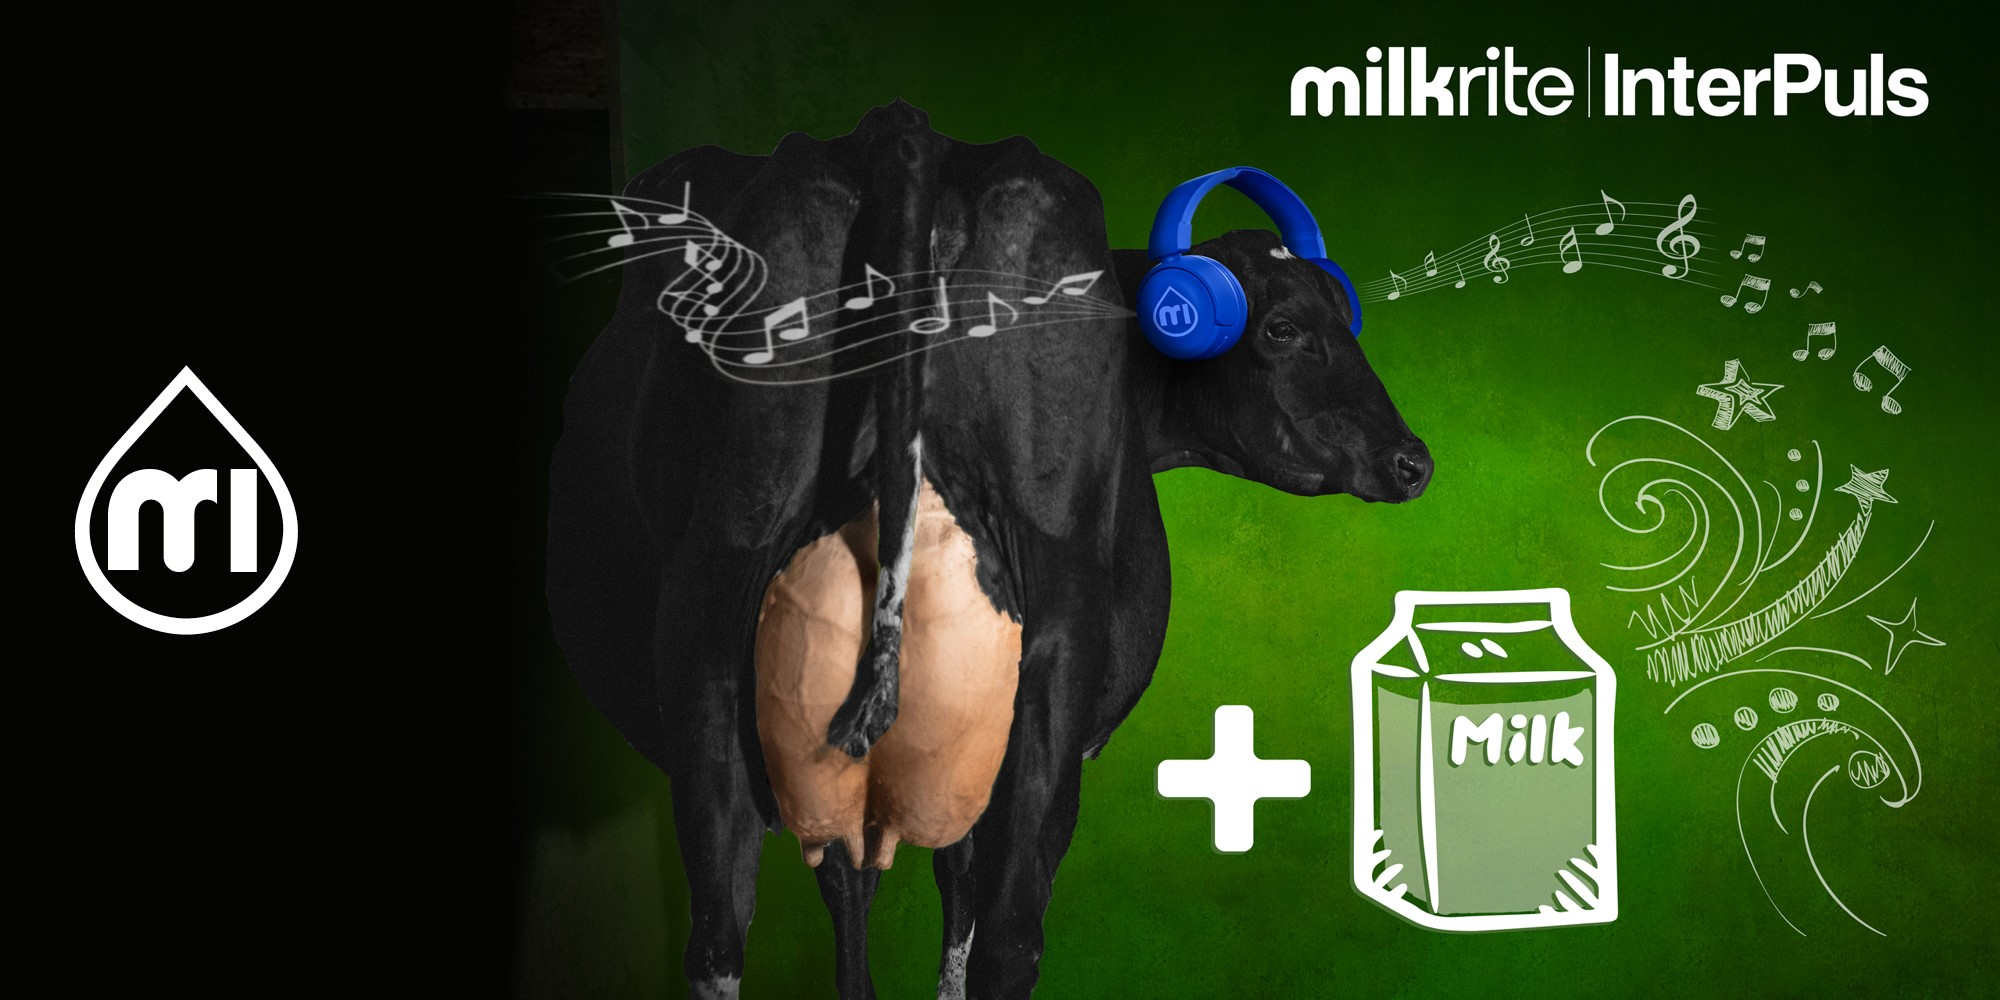 How to improve your milk yield through music